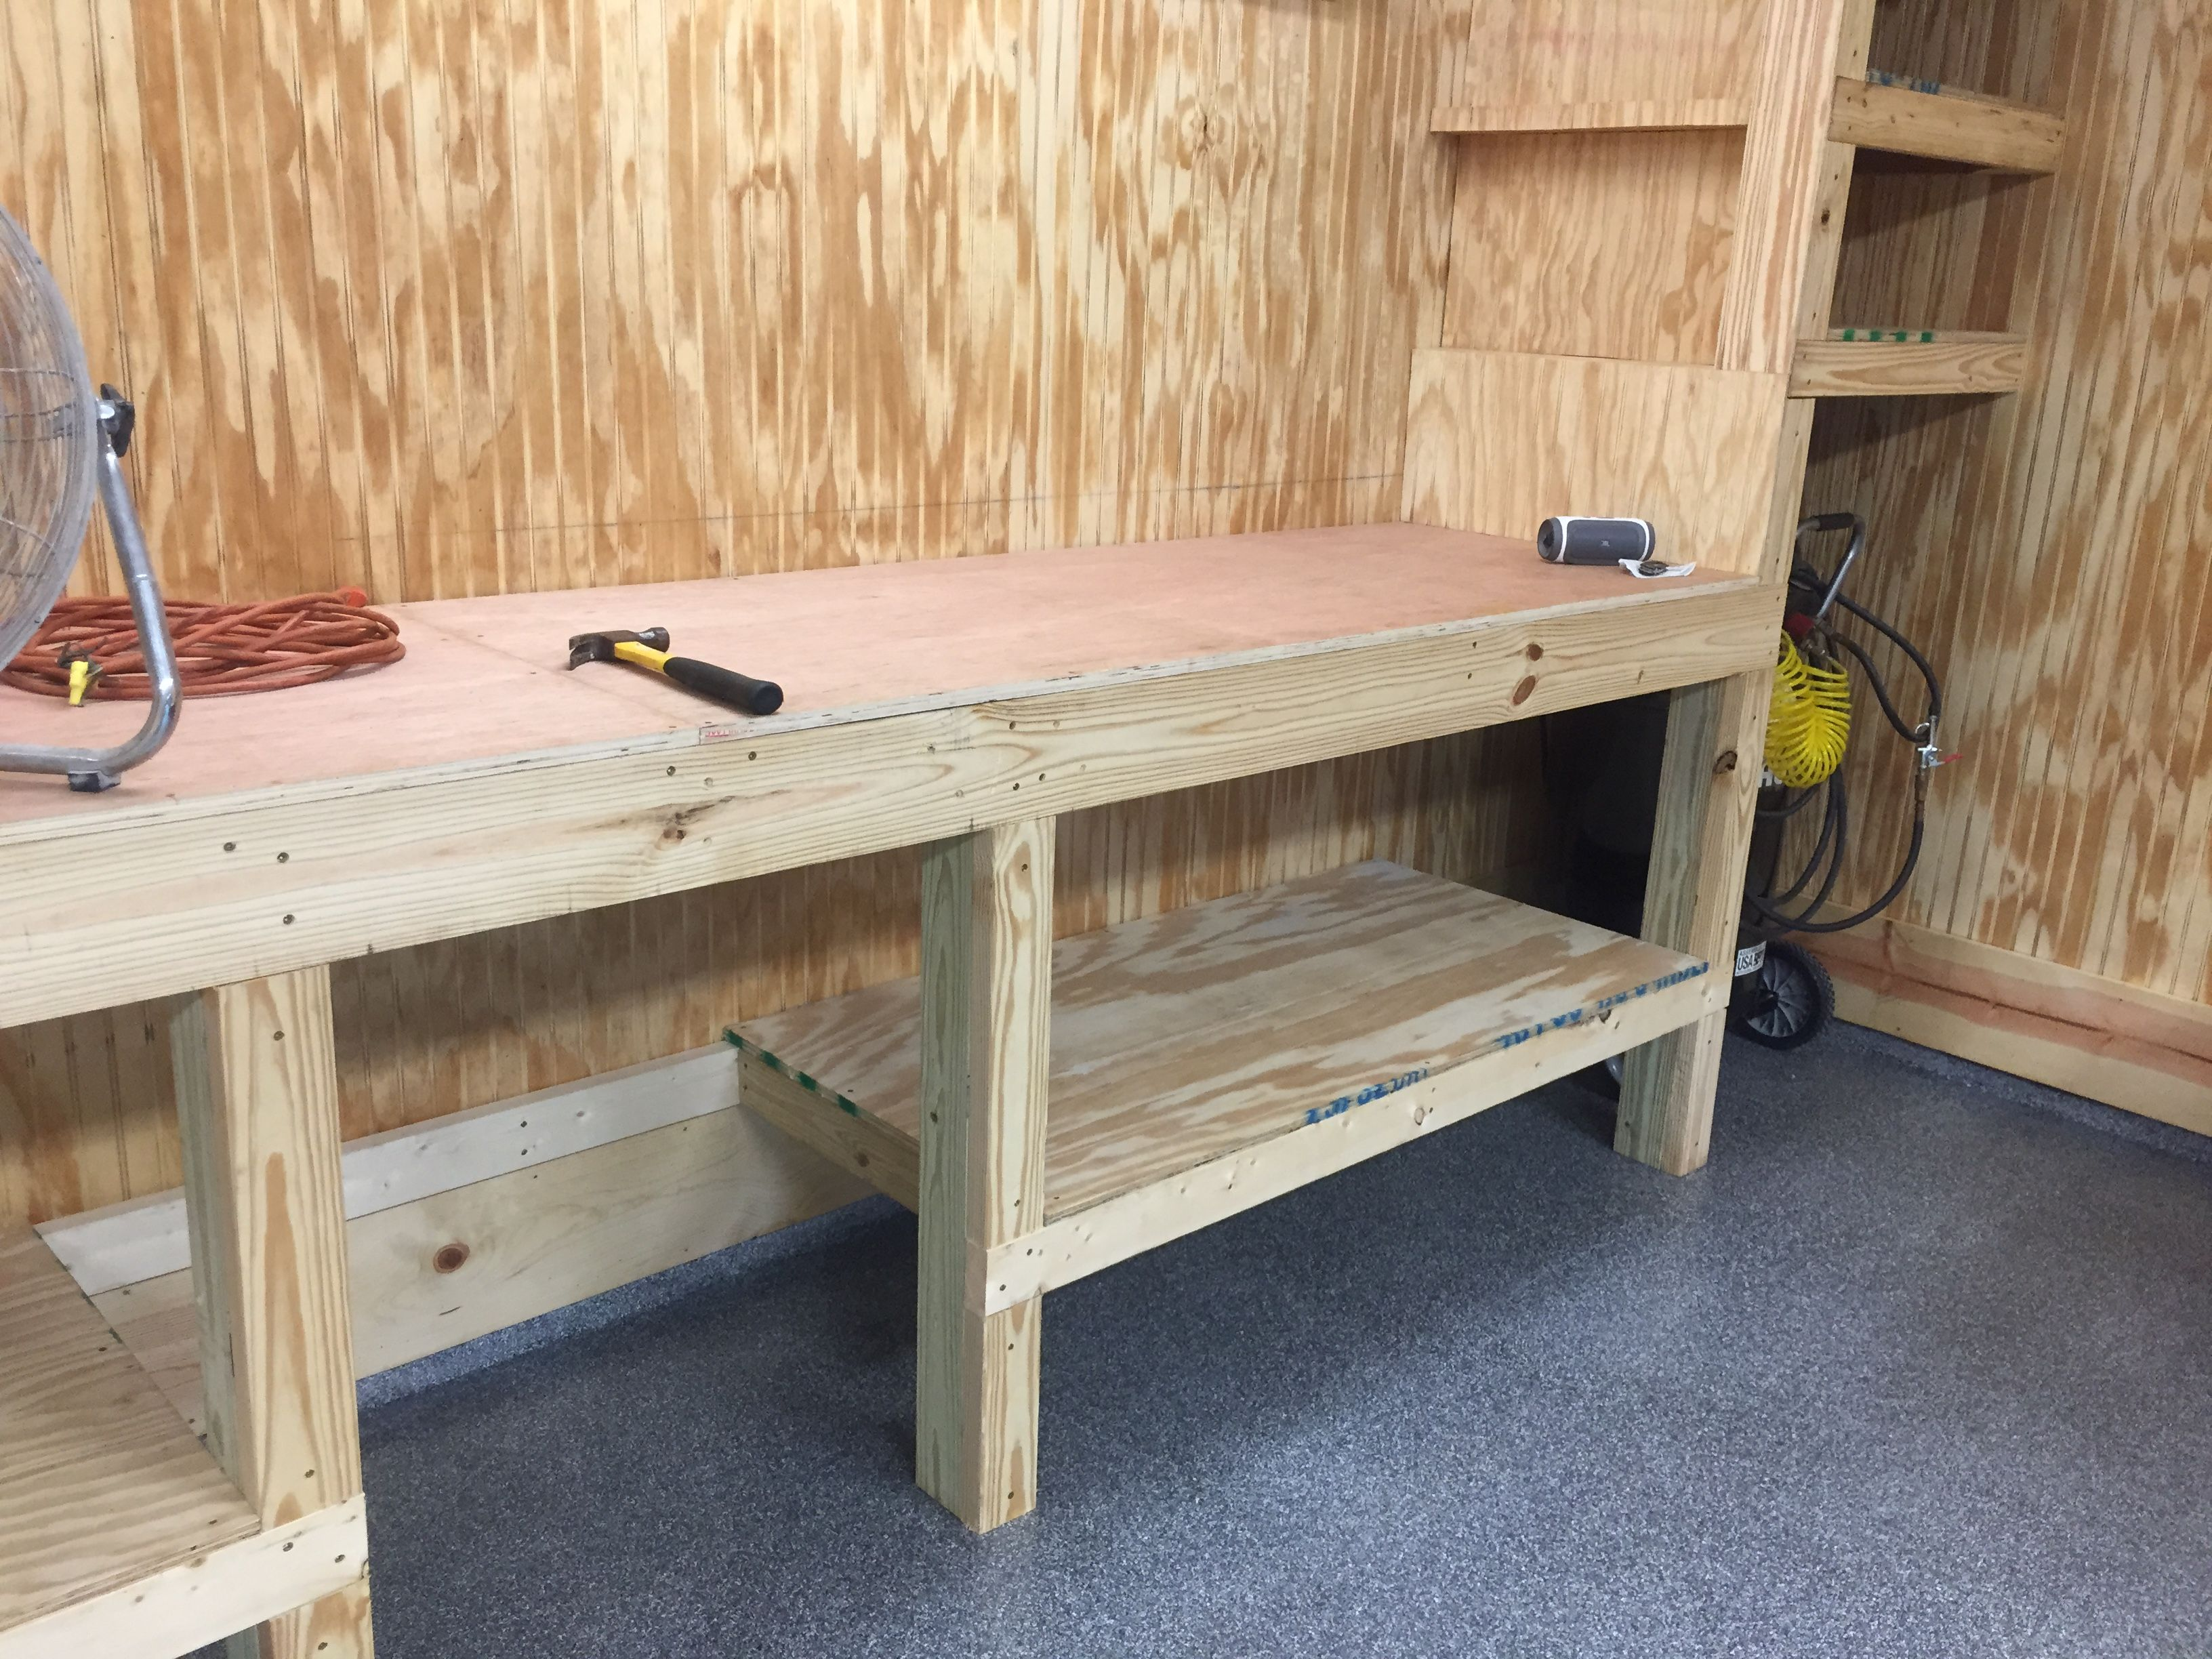 Pin By Marcone De Castro Ribeiro On My Projects Garage Workbench Plans Garage Organization Diy Garage Decor